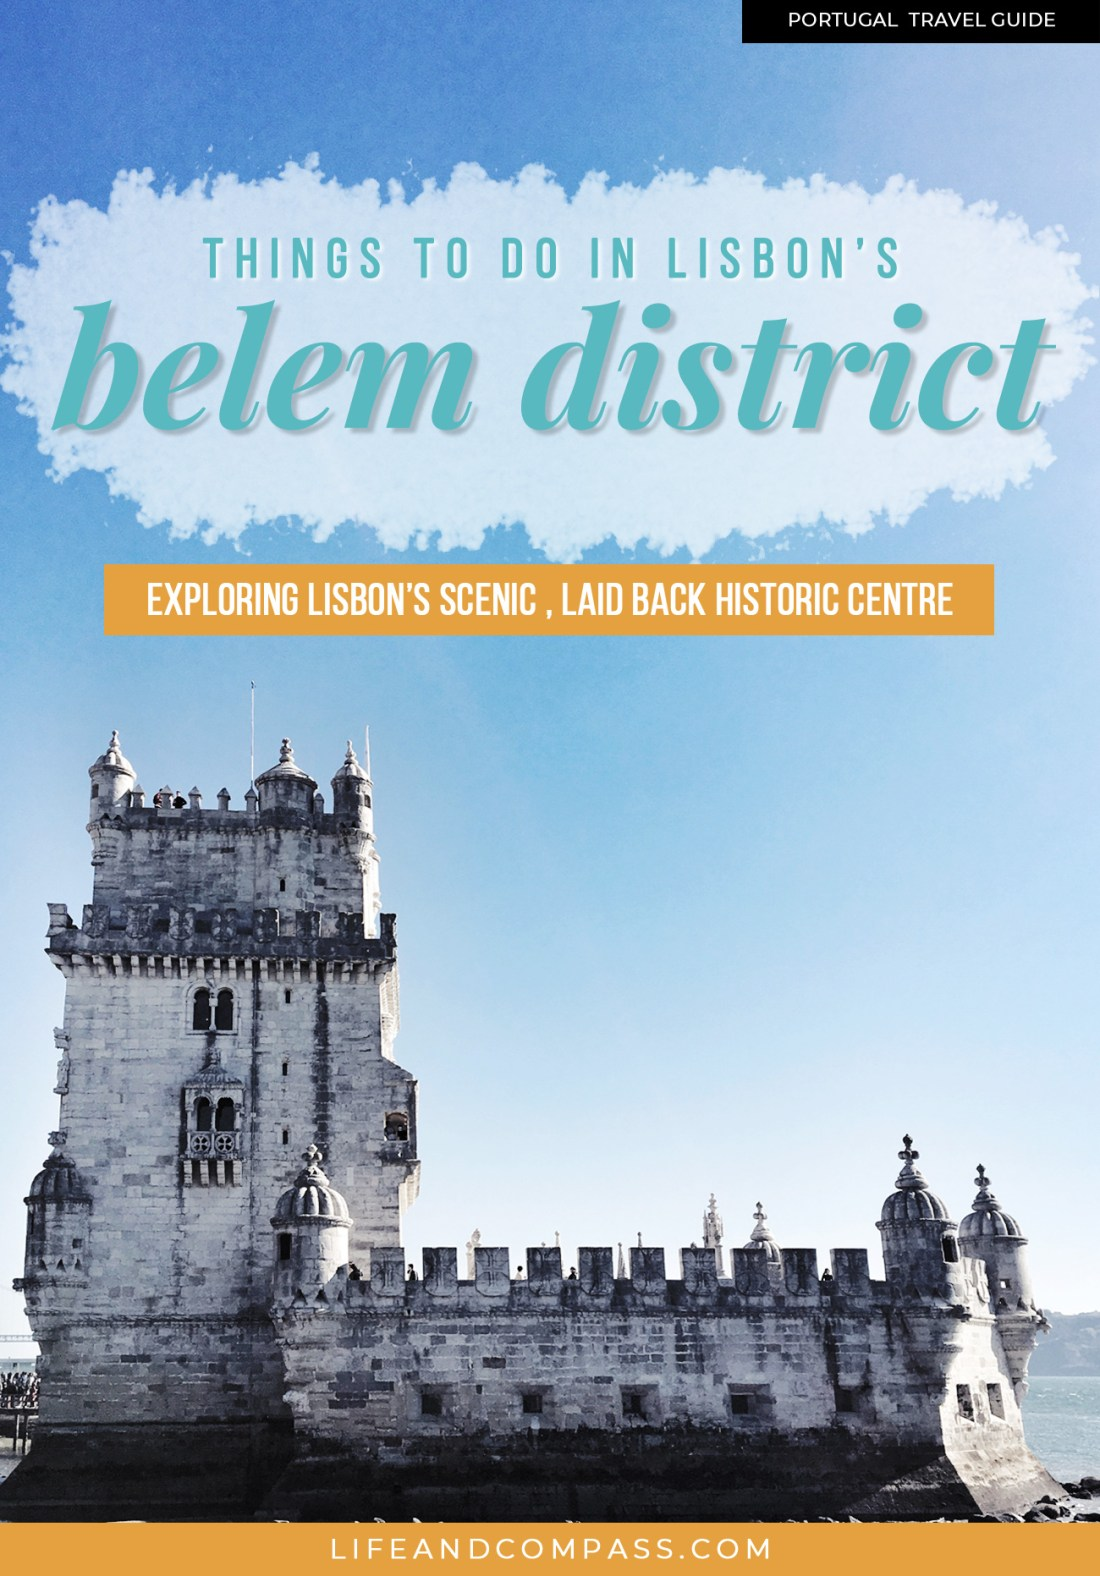 This is the gorgeous Belem in Lisbon, known as Lisbon's historic centre. From pasteis de nata (Portuguese tarts) and sightseeing by the water, here's my list of things to do in Belem!